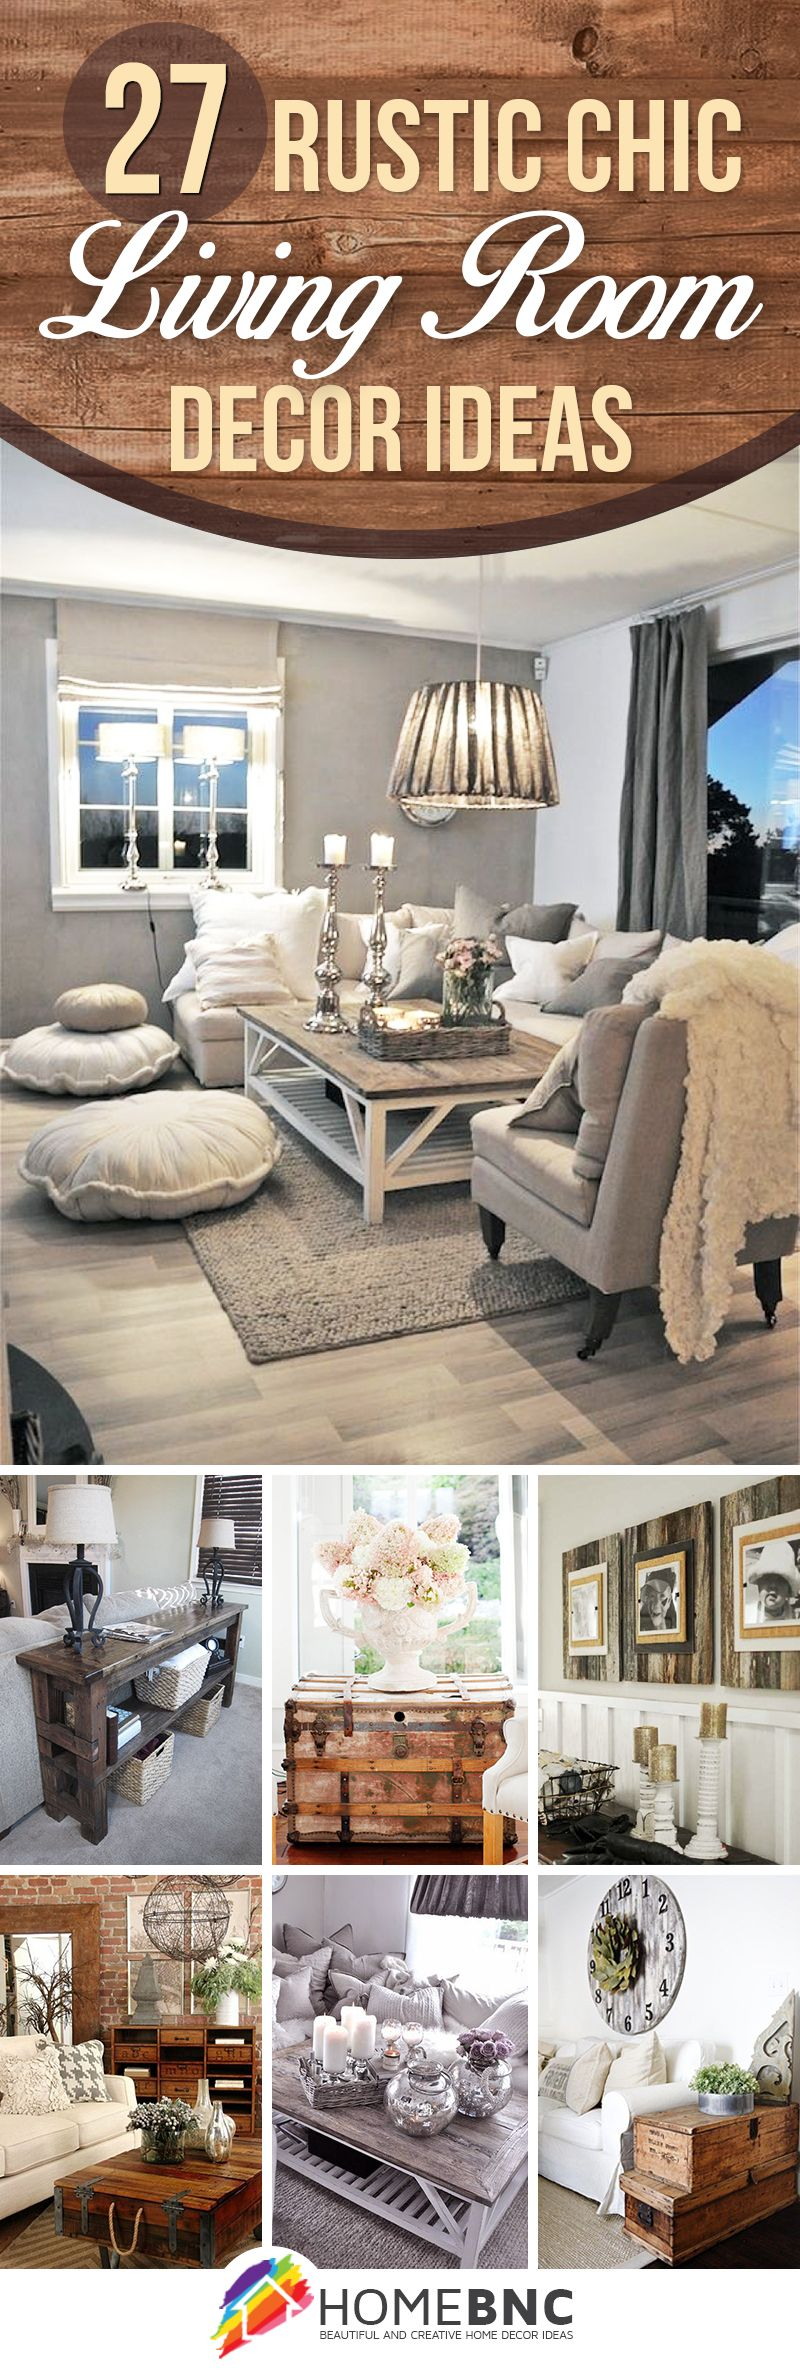 40 Breathtaking Rustic Chic Living Rooms That You Must See Chic Living Room Decor Rustic Chic Living Room Rustic Chic Living Room Decor